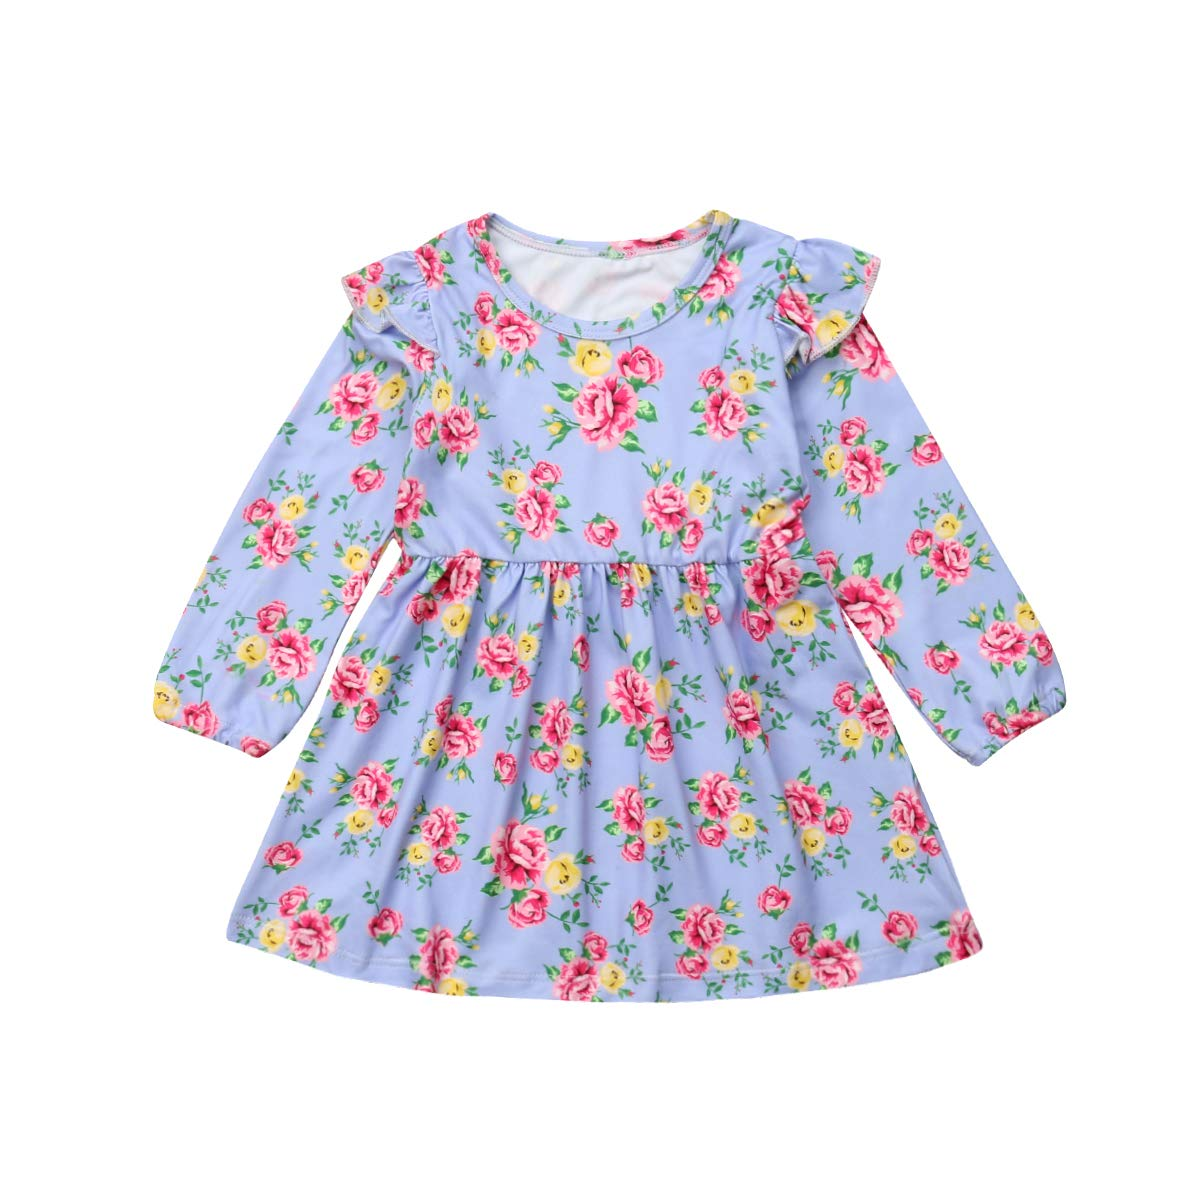 Purple, 4-5 T Guyay Newborn Infant Baby Girl Long Sleeve Floral Dress Toddler Ruffle Pleated Midi Dress